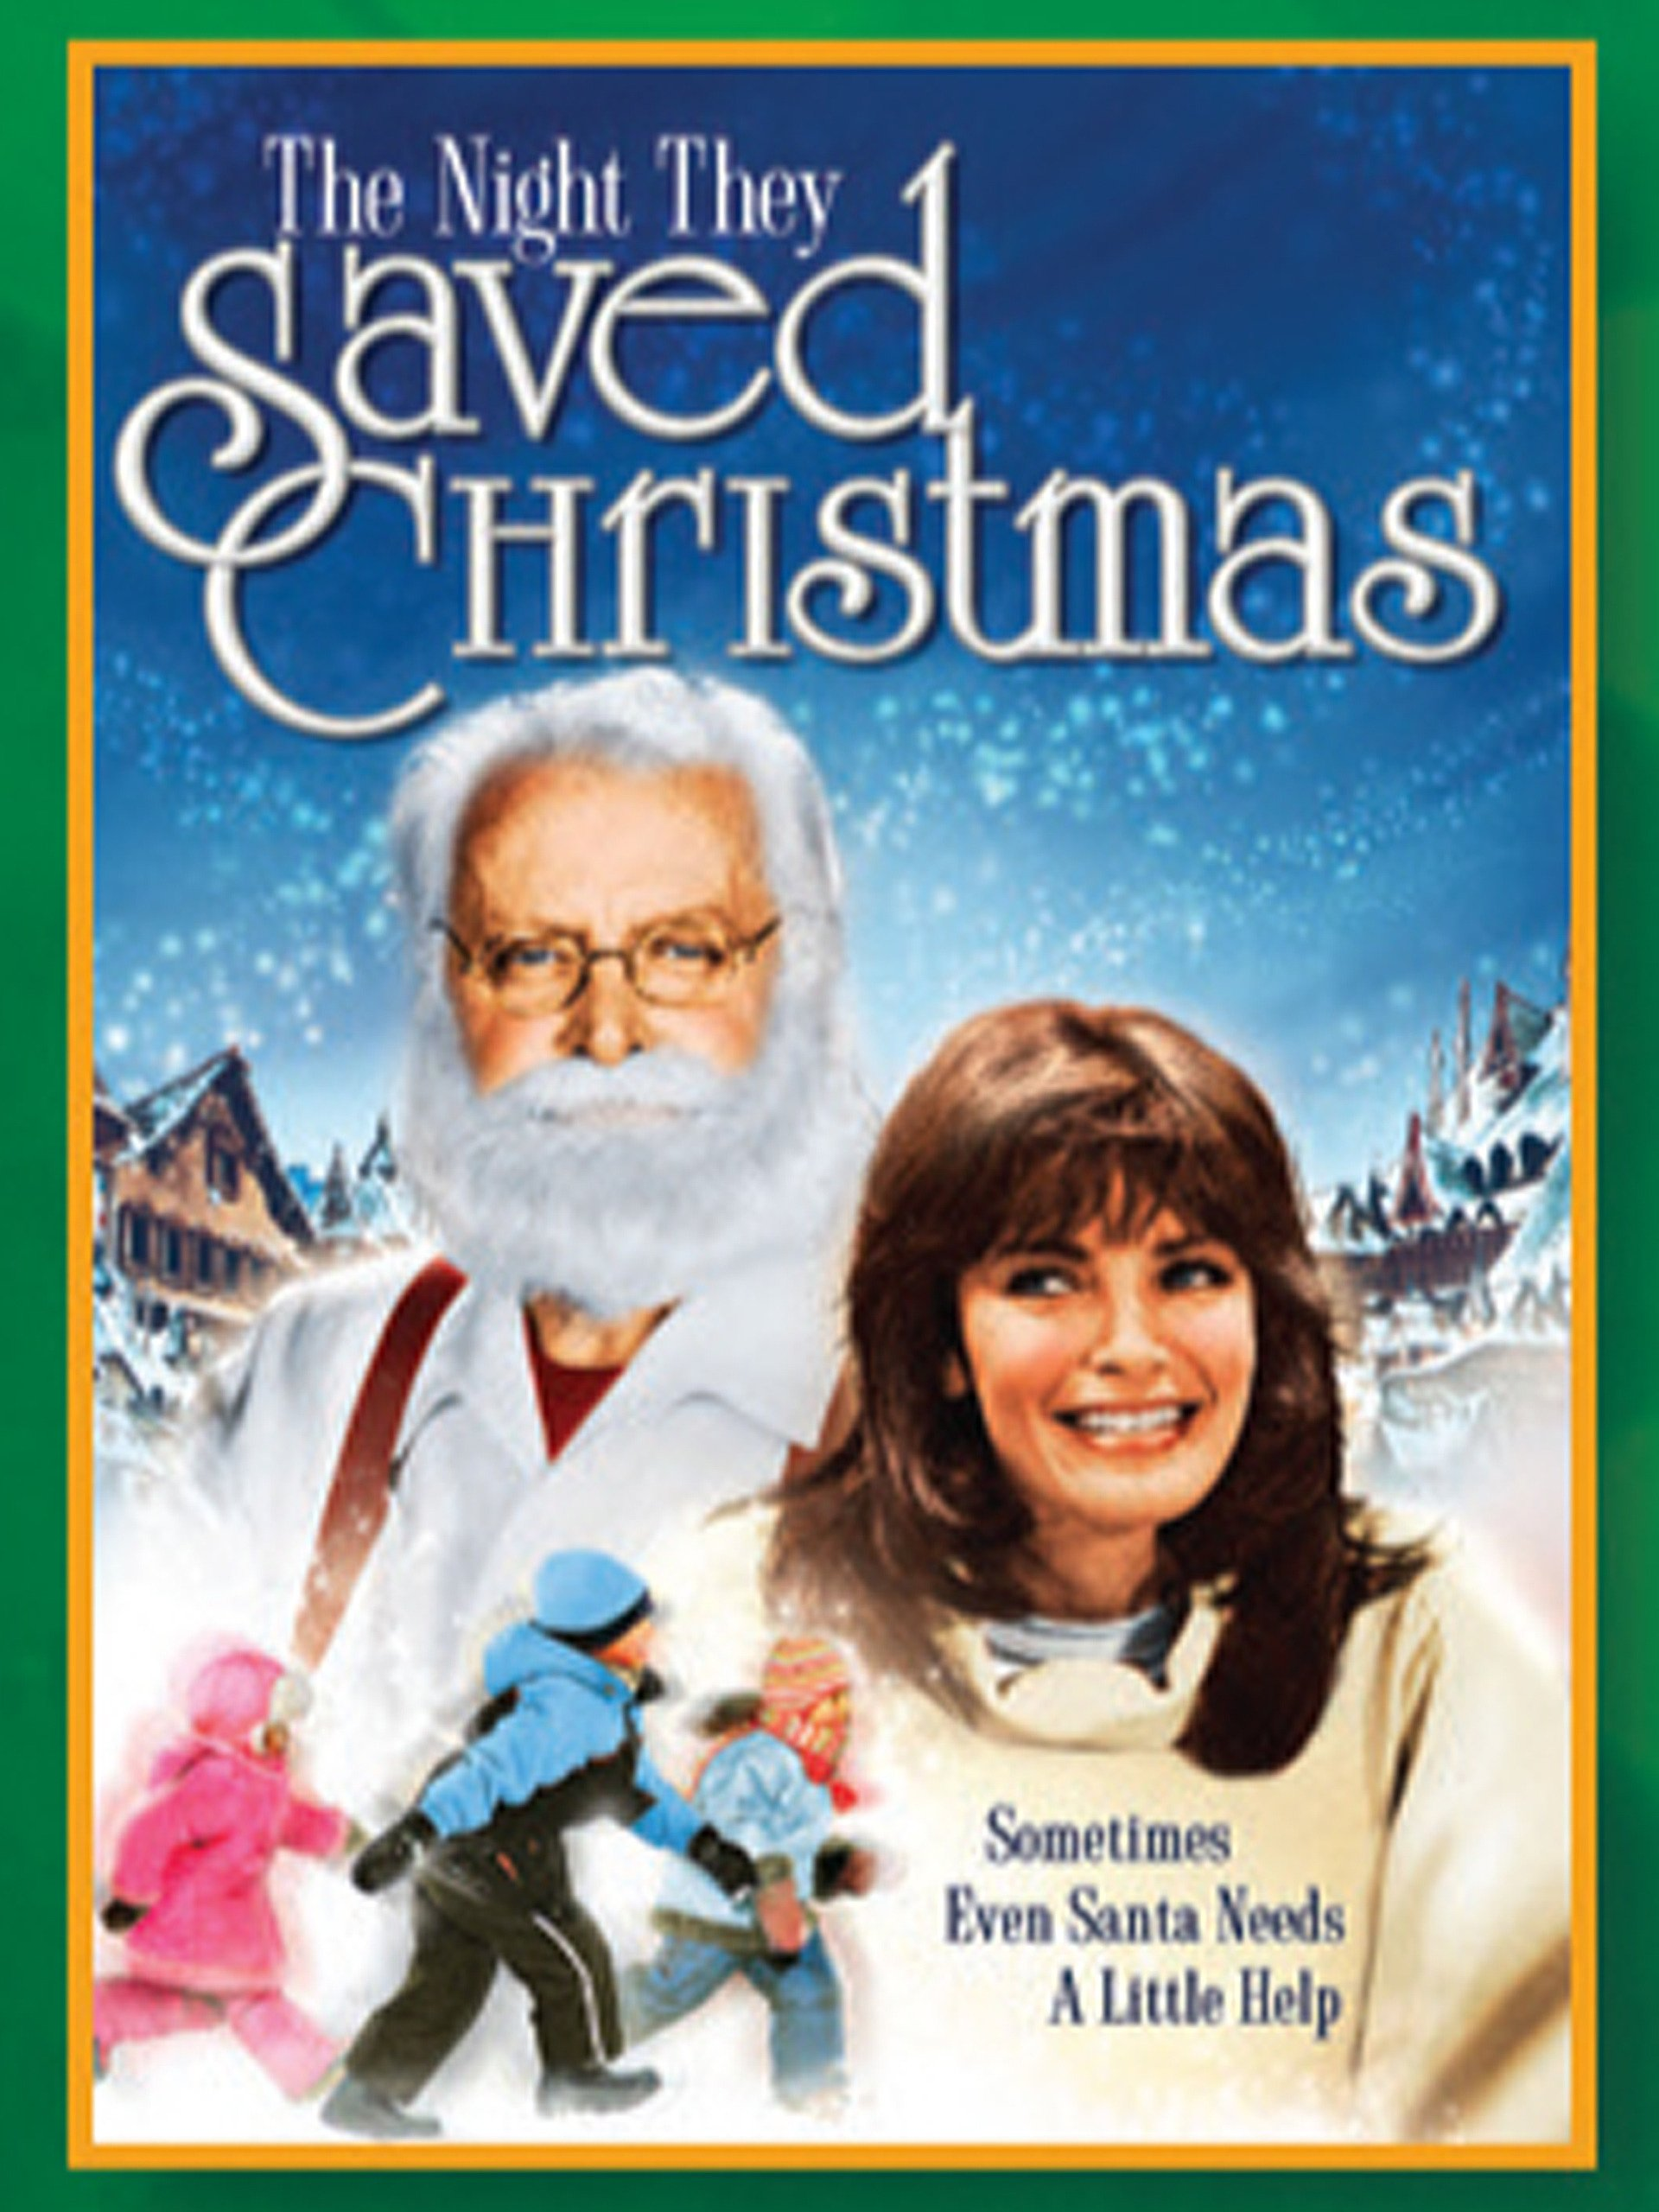 amazoncom watch the night they saved christmas prime video - The Night They Saved Christmas Dvd